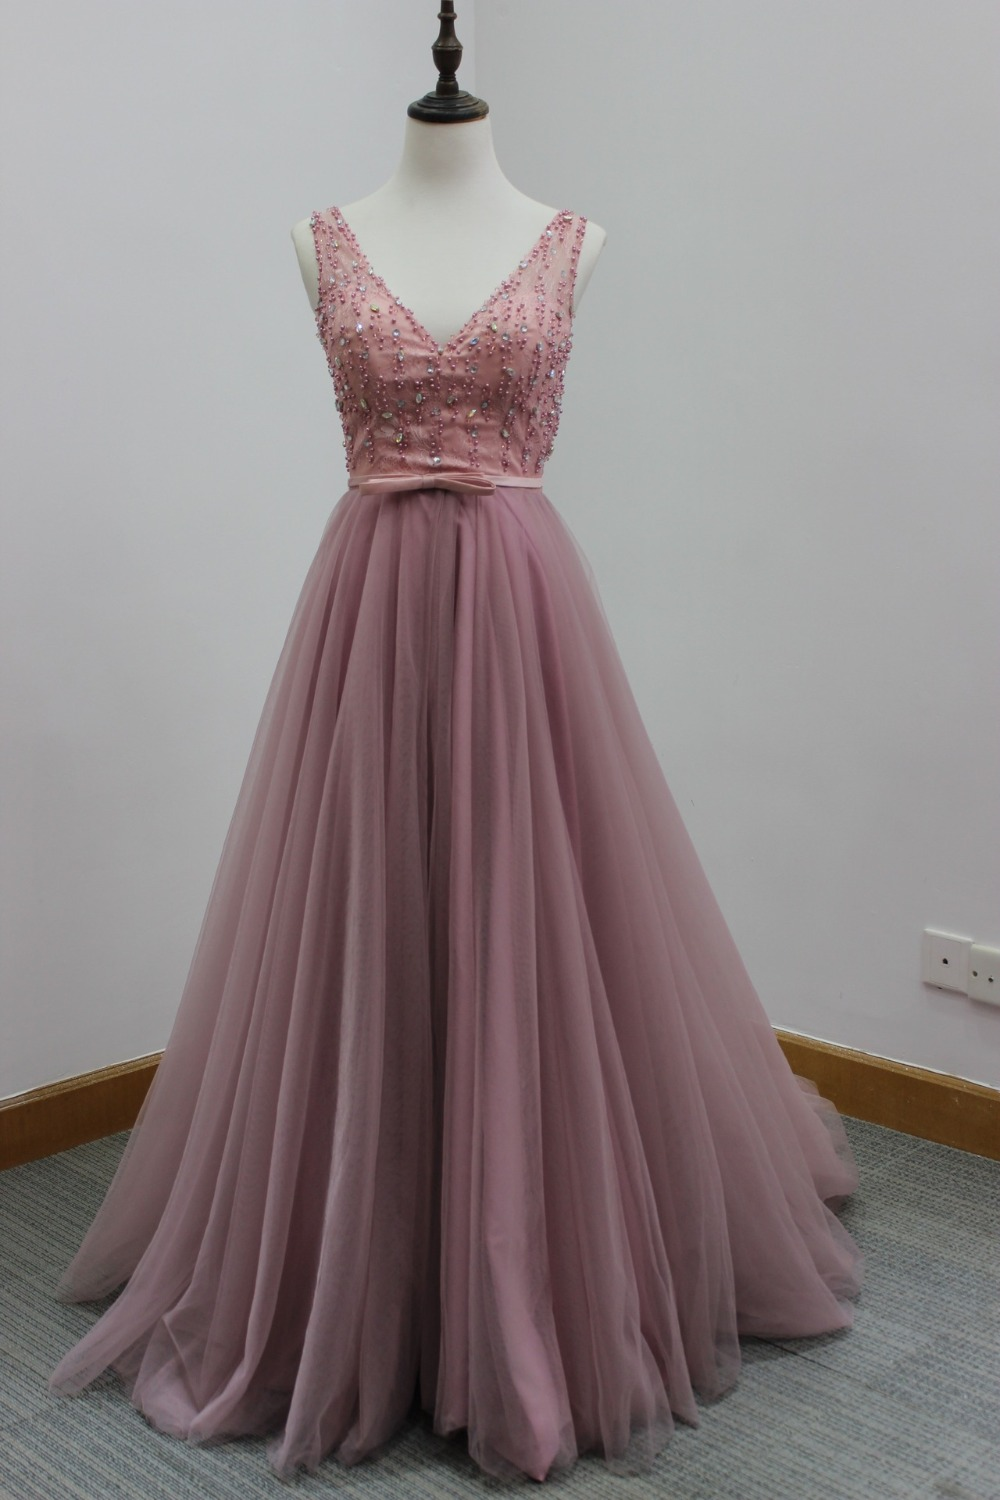 Vintage rose pink bridesmaid dresses for Antique rose wedding dress